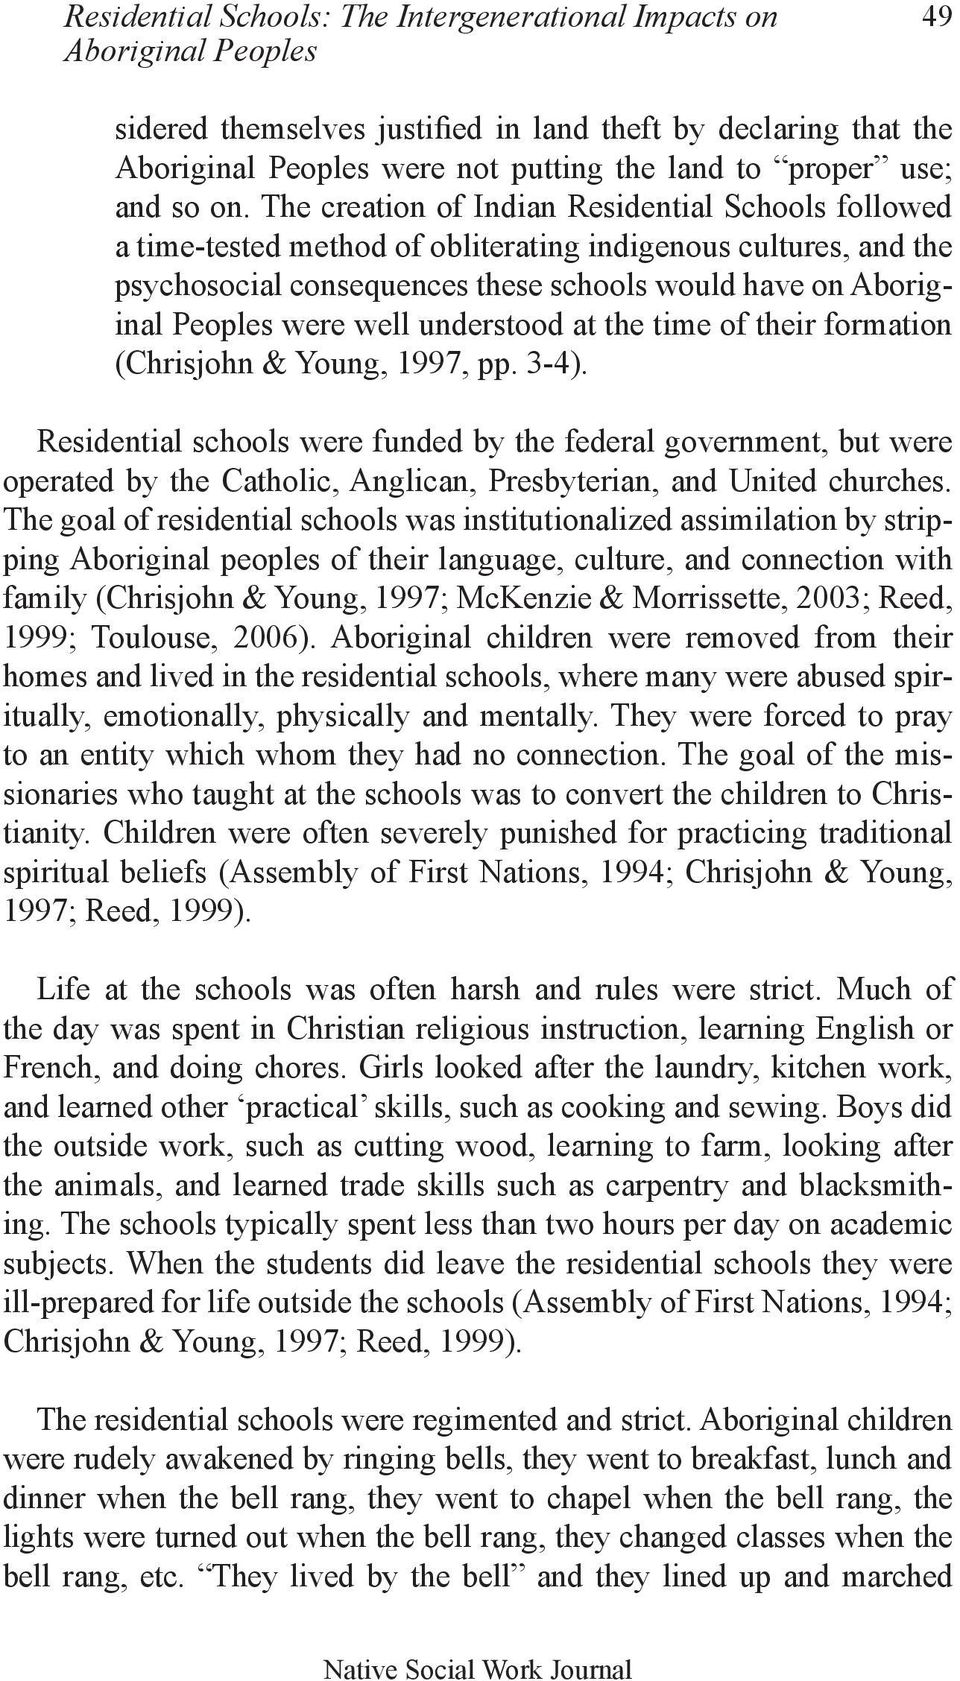 The creation of Indian Residential Schools followed a time-tested method of obliterating indigenous cultures, and the psychosocial consequences these schools would have on Aboriginal Peoples were